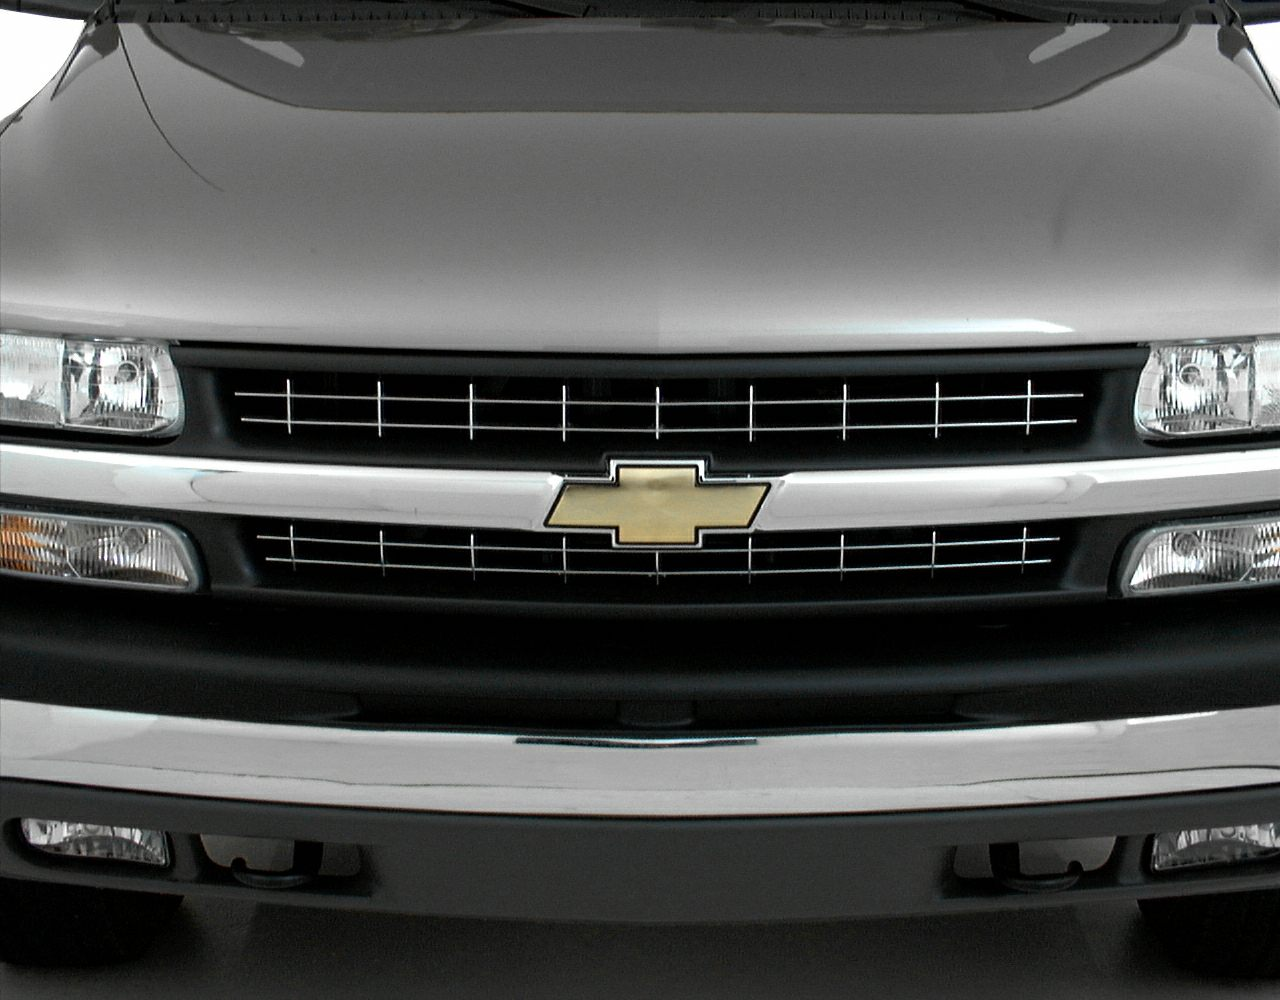 All Chevy chevy 1500 weight : 2000 Chevrolet Silverado 1500 LS 4x4 Regular Cab 8 ft. box 133 in ...